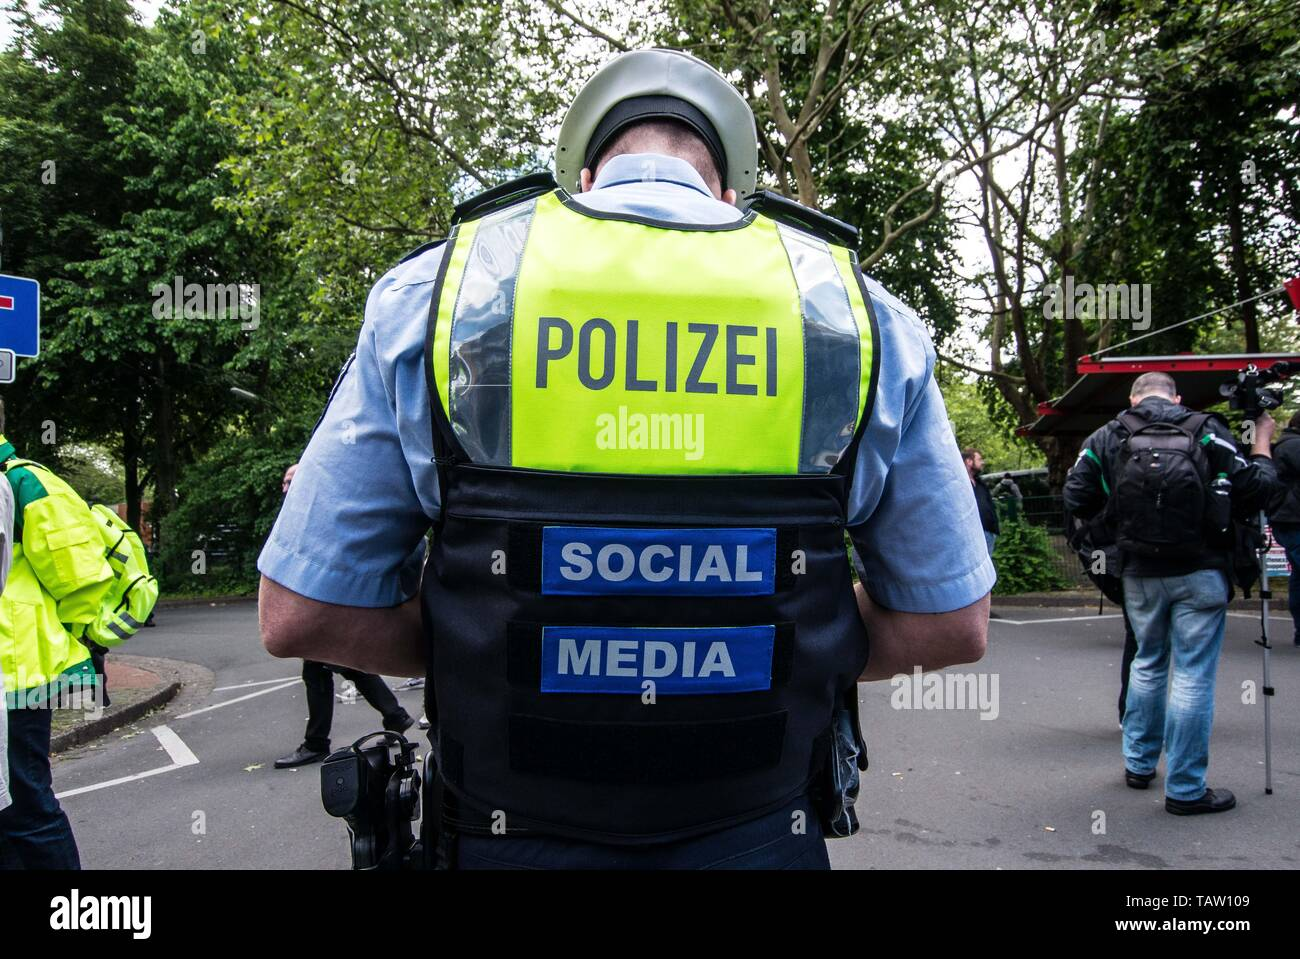 Dortmund, Nordrhein Westfalen, Germany. 25th May, 2019. A German police officer at a neonazi rally in Germany wears the identifiers that he is updating via their social networking platforms. Credit: Sachelle Babbar/ZUMA Wire/Alamy Live News Stock Photo